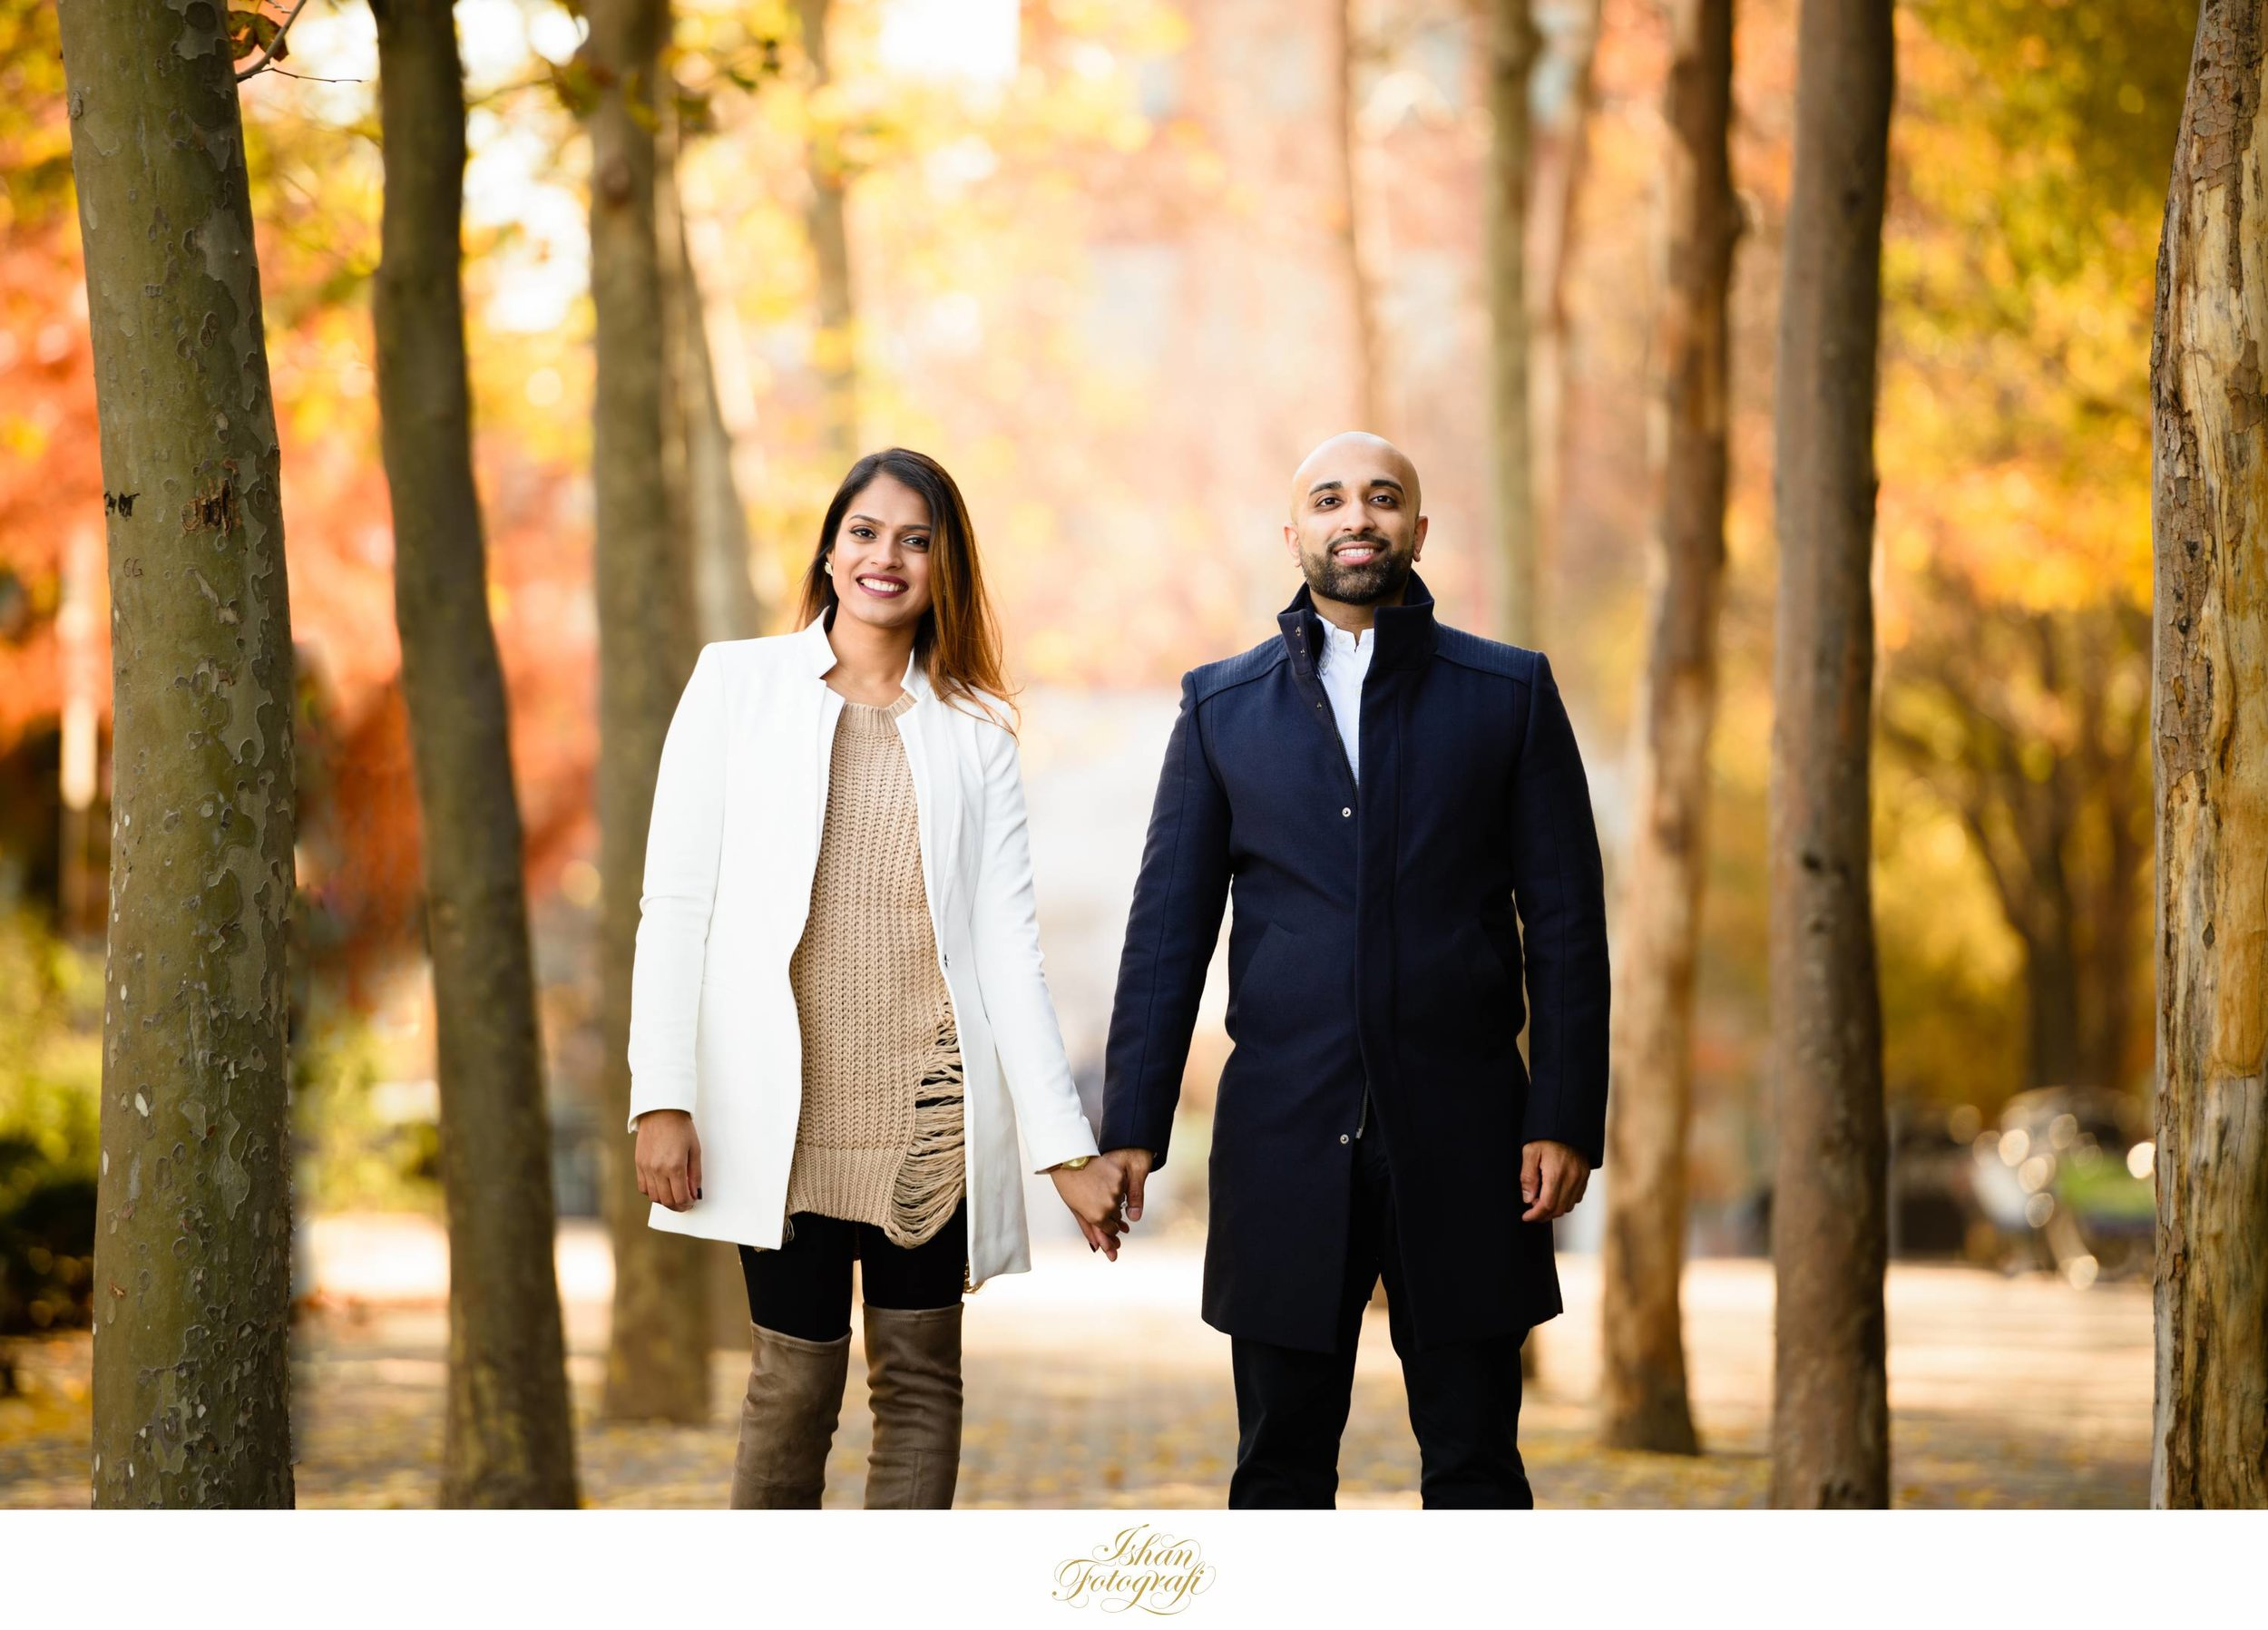 The sidewalk around Pier A & Pier C parks are pretty wide and are covered with tress on either side. This allows us as NJ wedding photographers to create a variety of different looks by simply walking in and around Hoboken. Hoboken has many cobblestone streets which are popular for engagement photos.